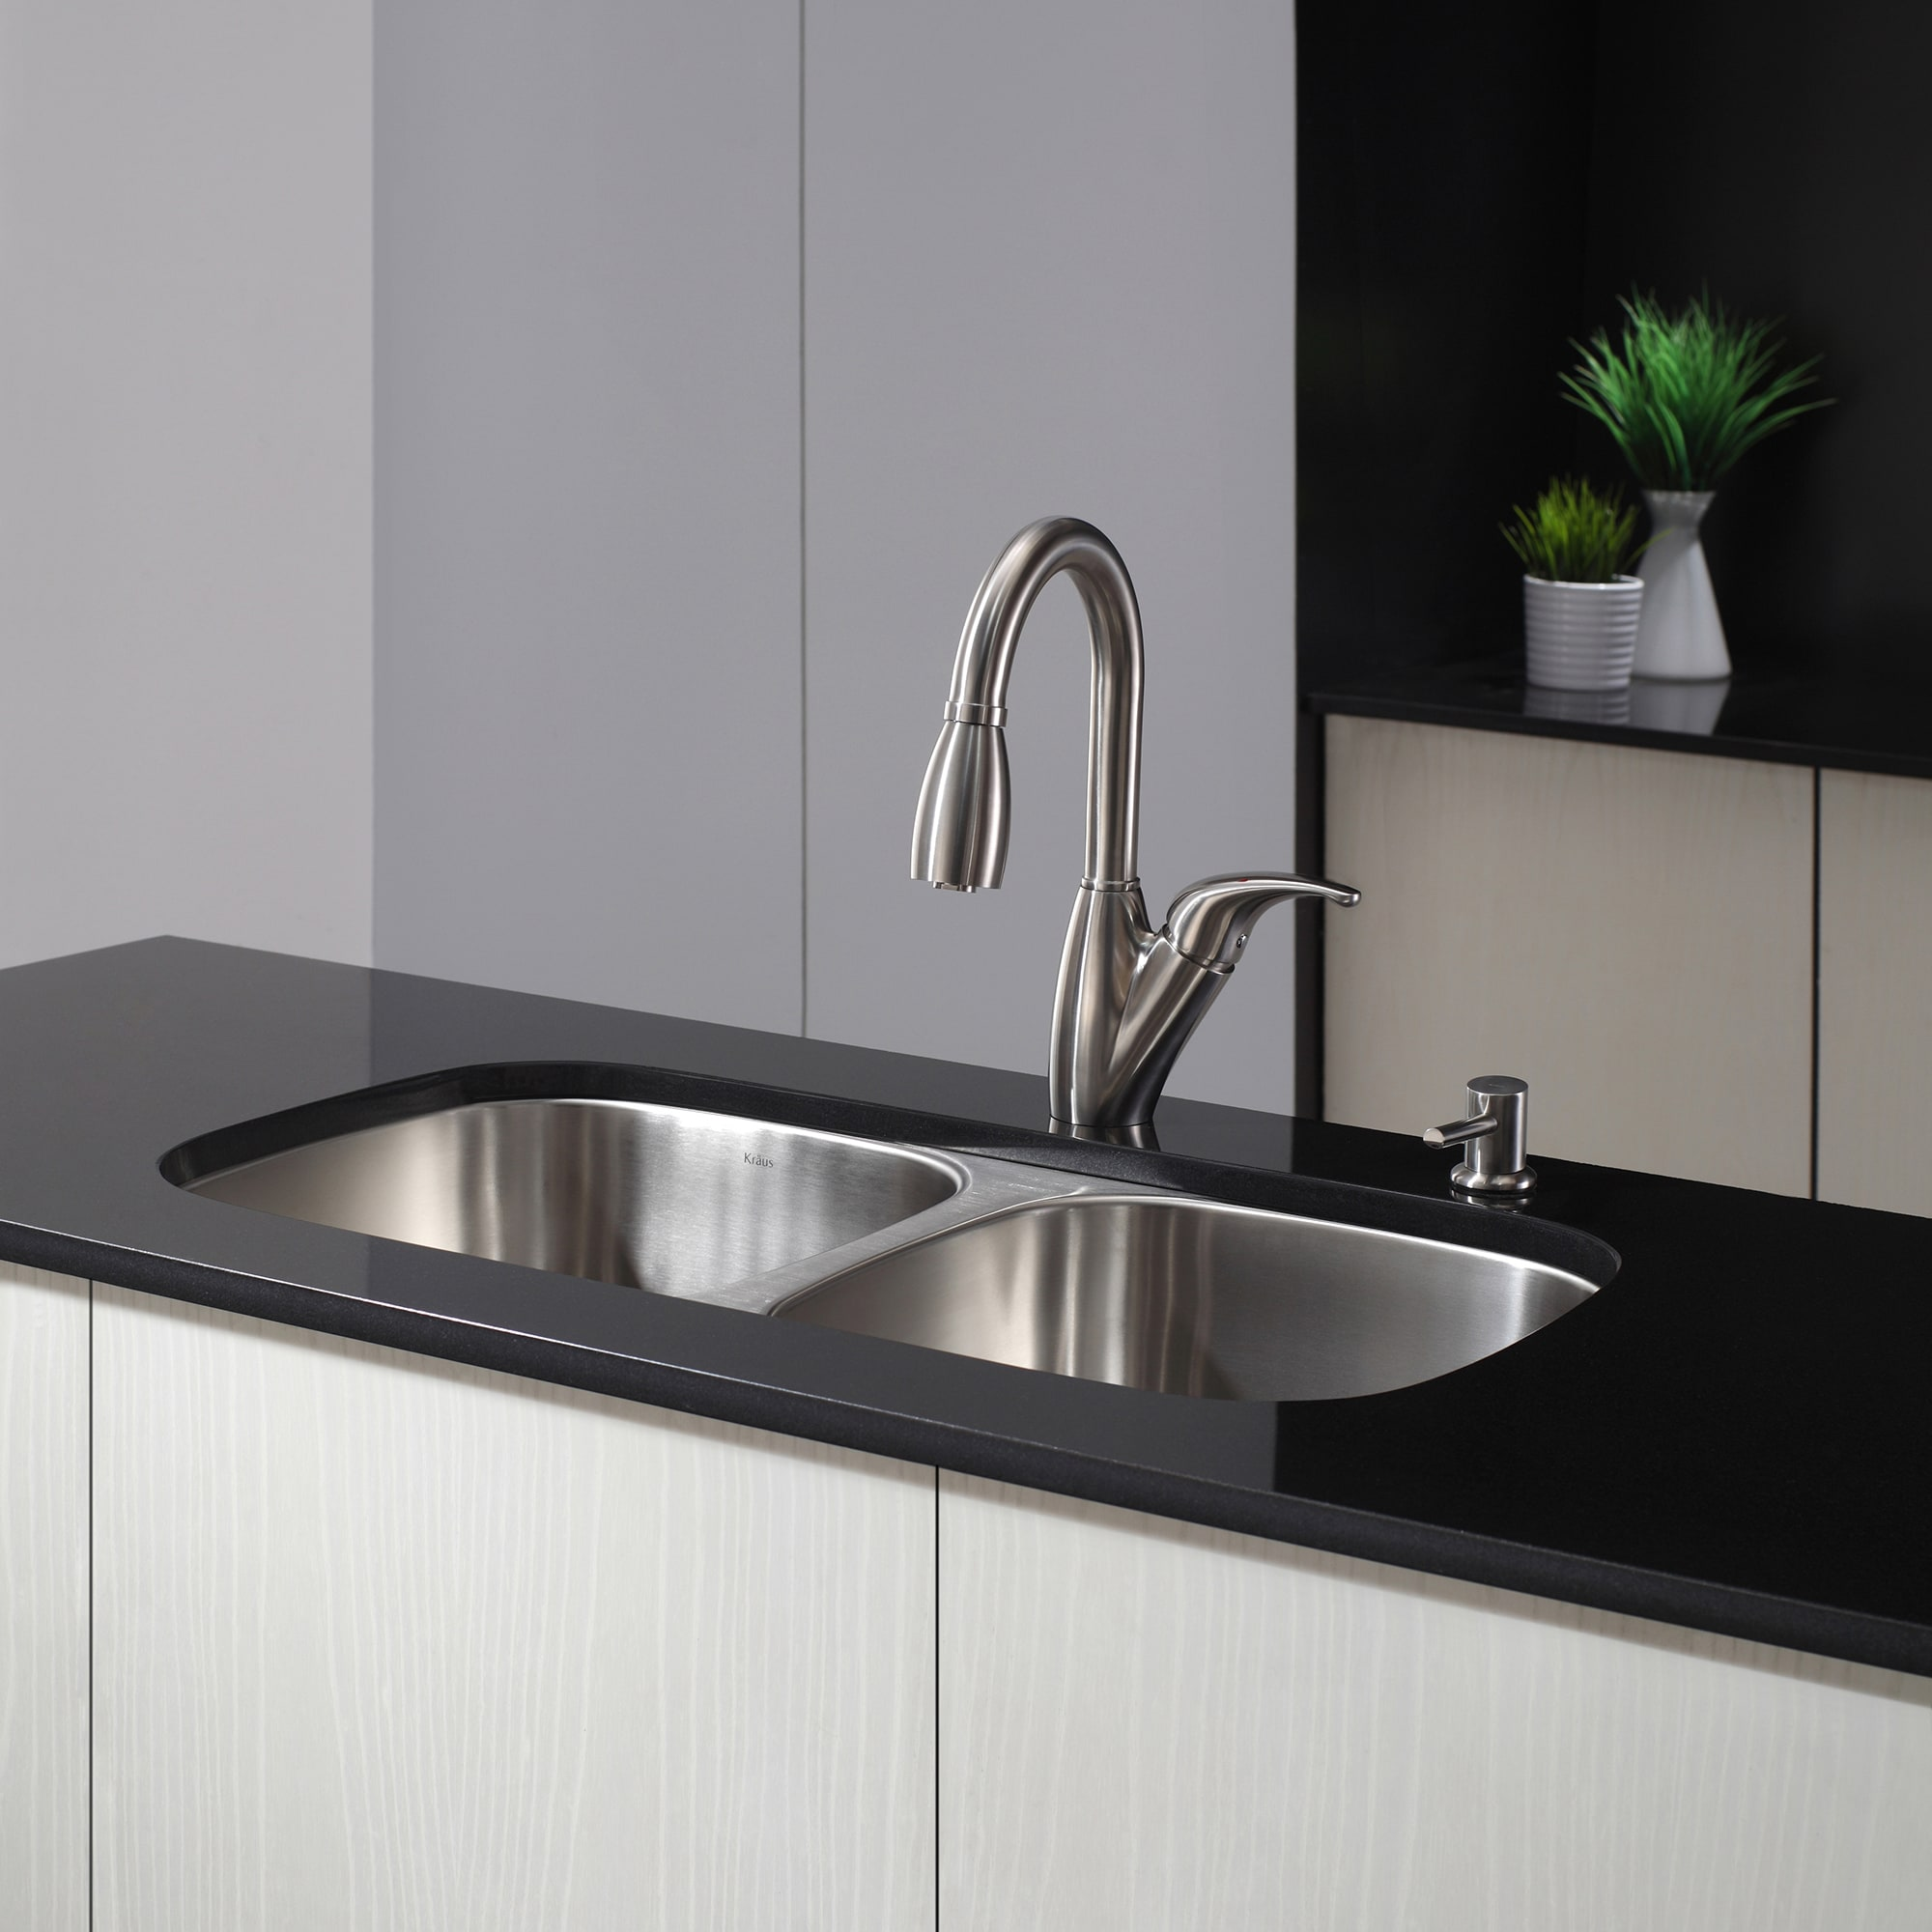 kraus 32 inch undermount 50 50 double bowl 16 gauge stainless steel kitchen sink with noisedefend soundproofing   free shipping today   overstock com       kraus 32 inch undermount 50 50 double bowl 16 gauge stainless      rh   overstock com